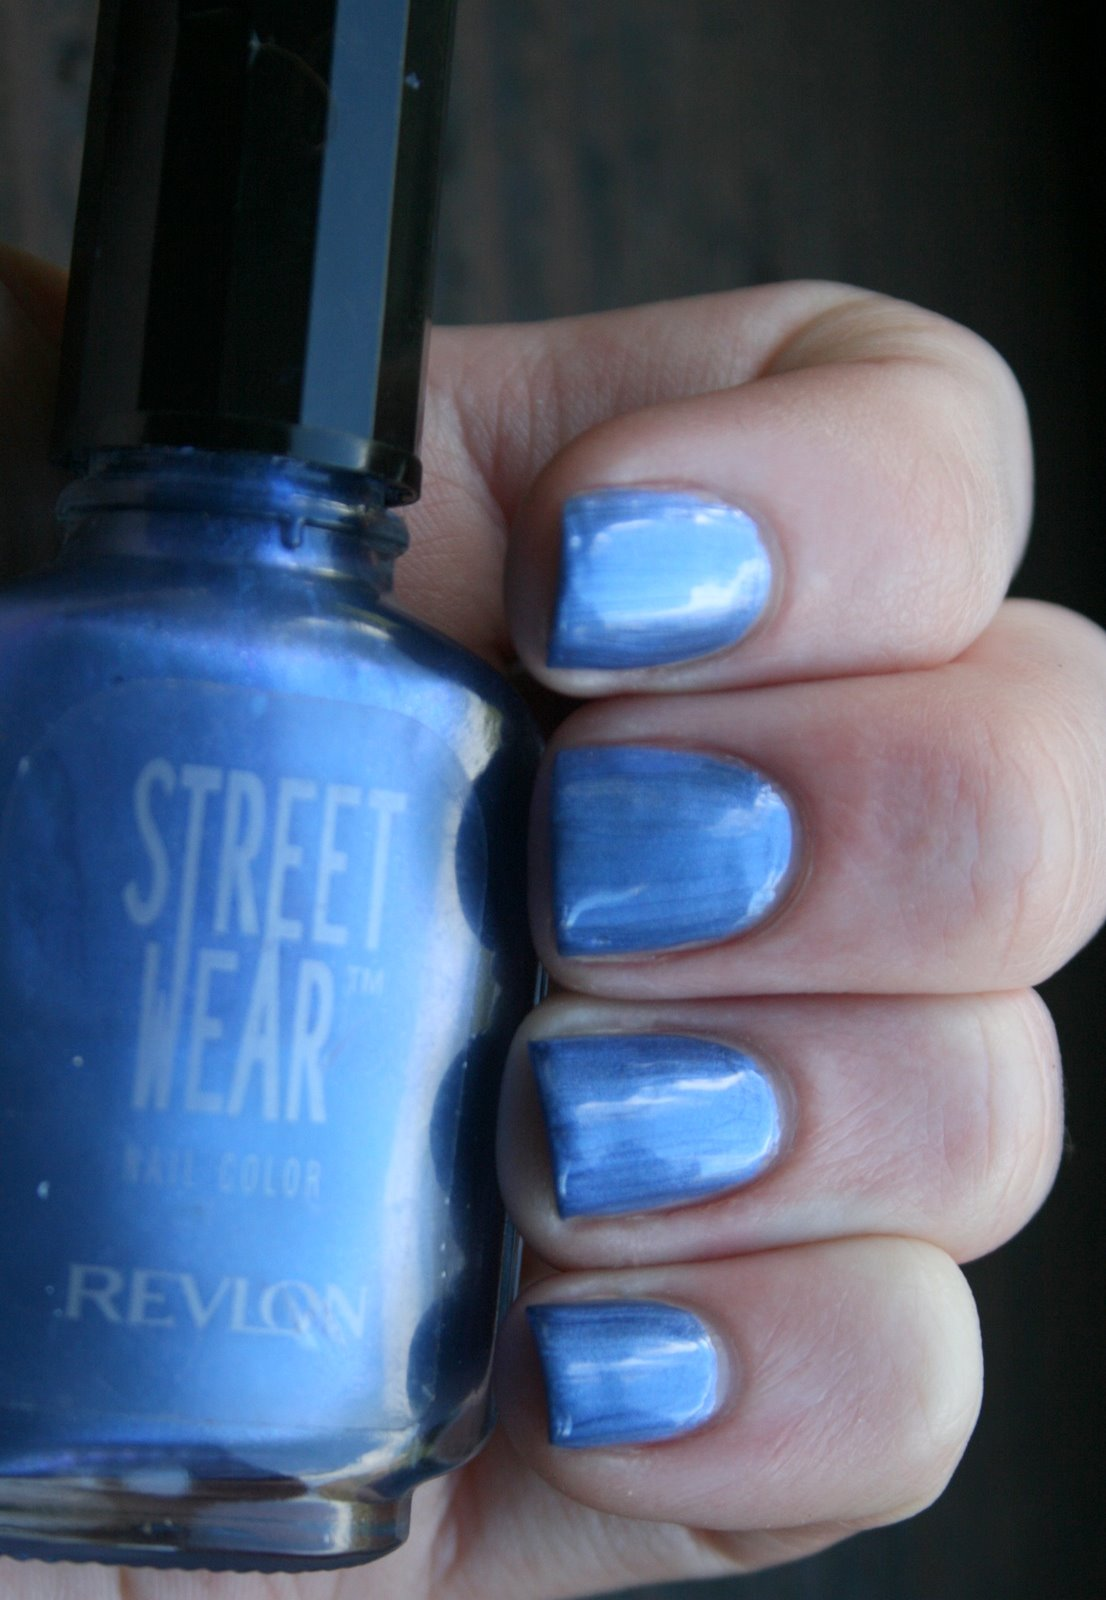 Revlon Streetwear Splash or Midnight